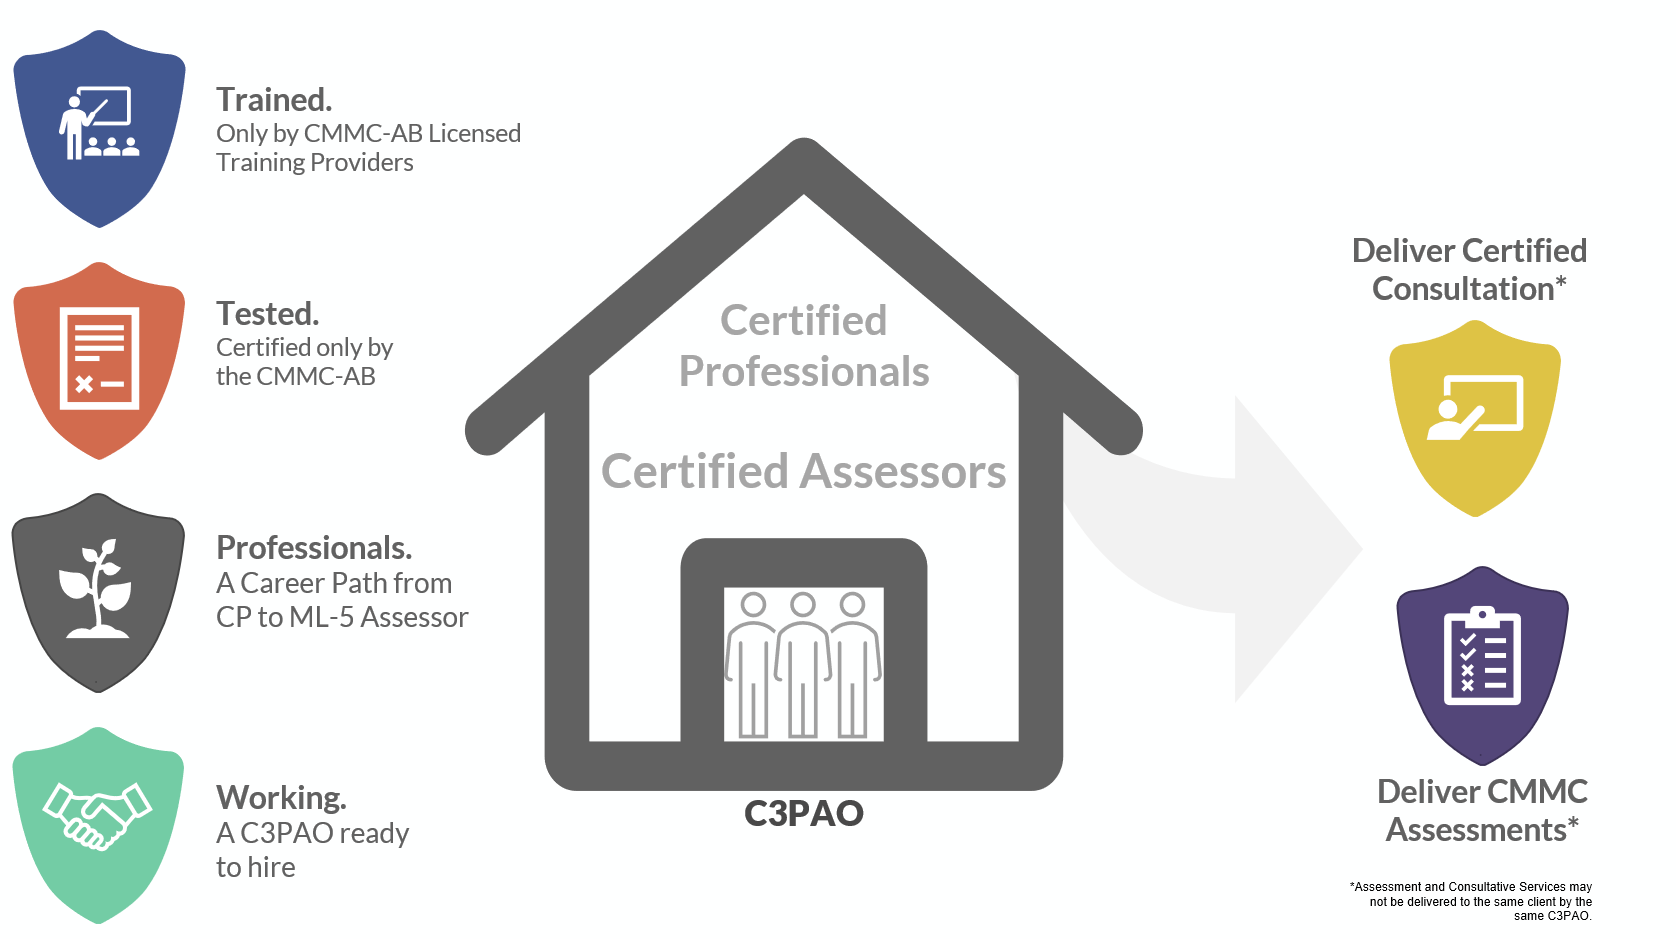 Infographic showing the features of the Certified Professional and Certified Assessor roles